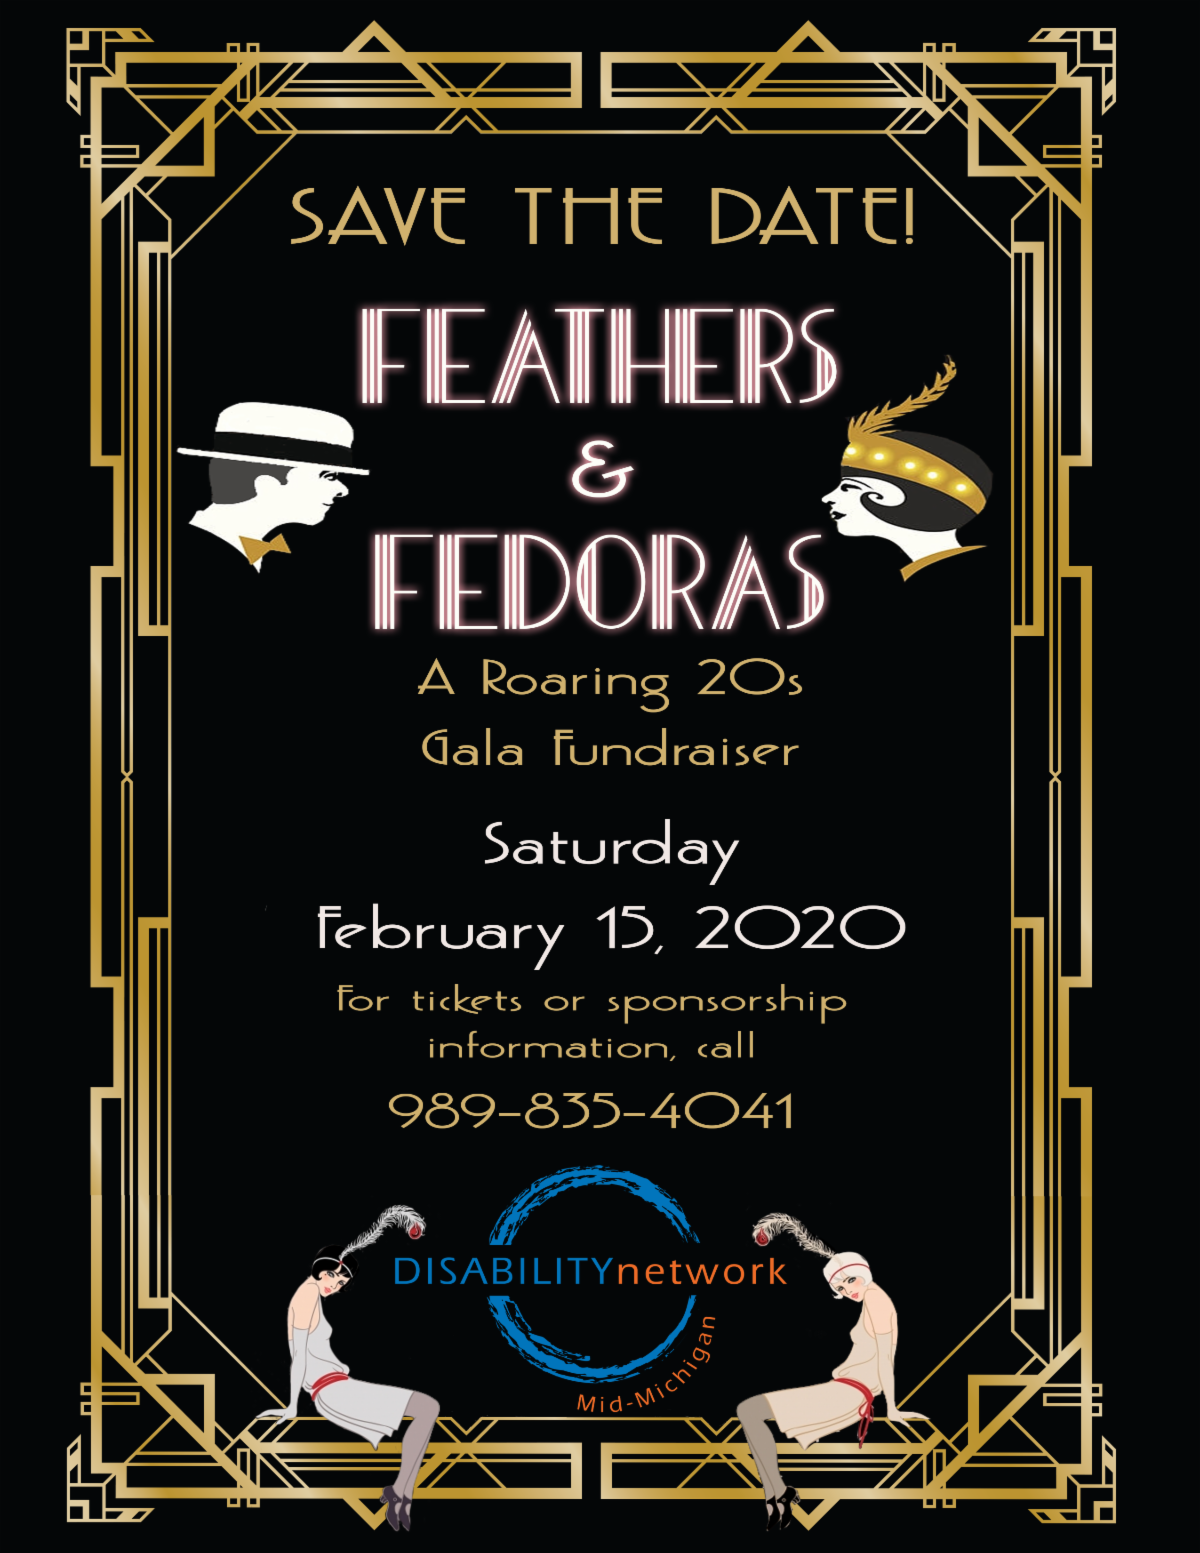 save the date feathers and fedoras gatsby style fundraiser saturday february 15_ 2020. at the great hall in midland